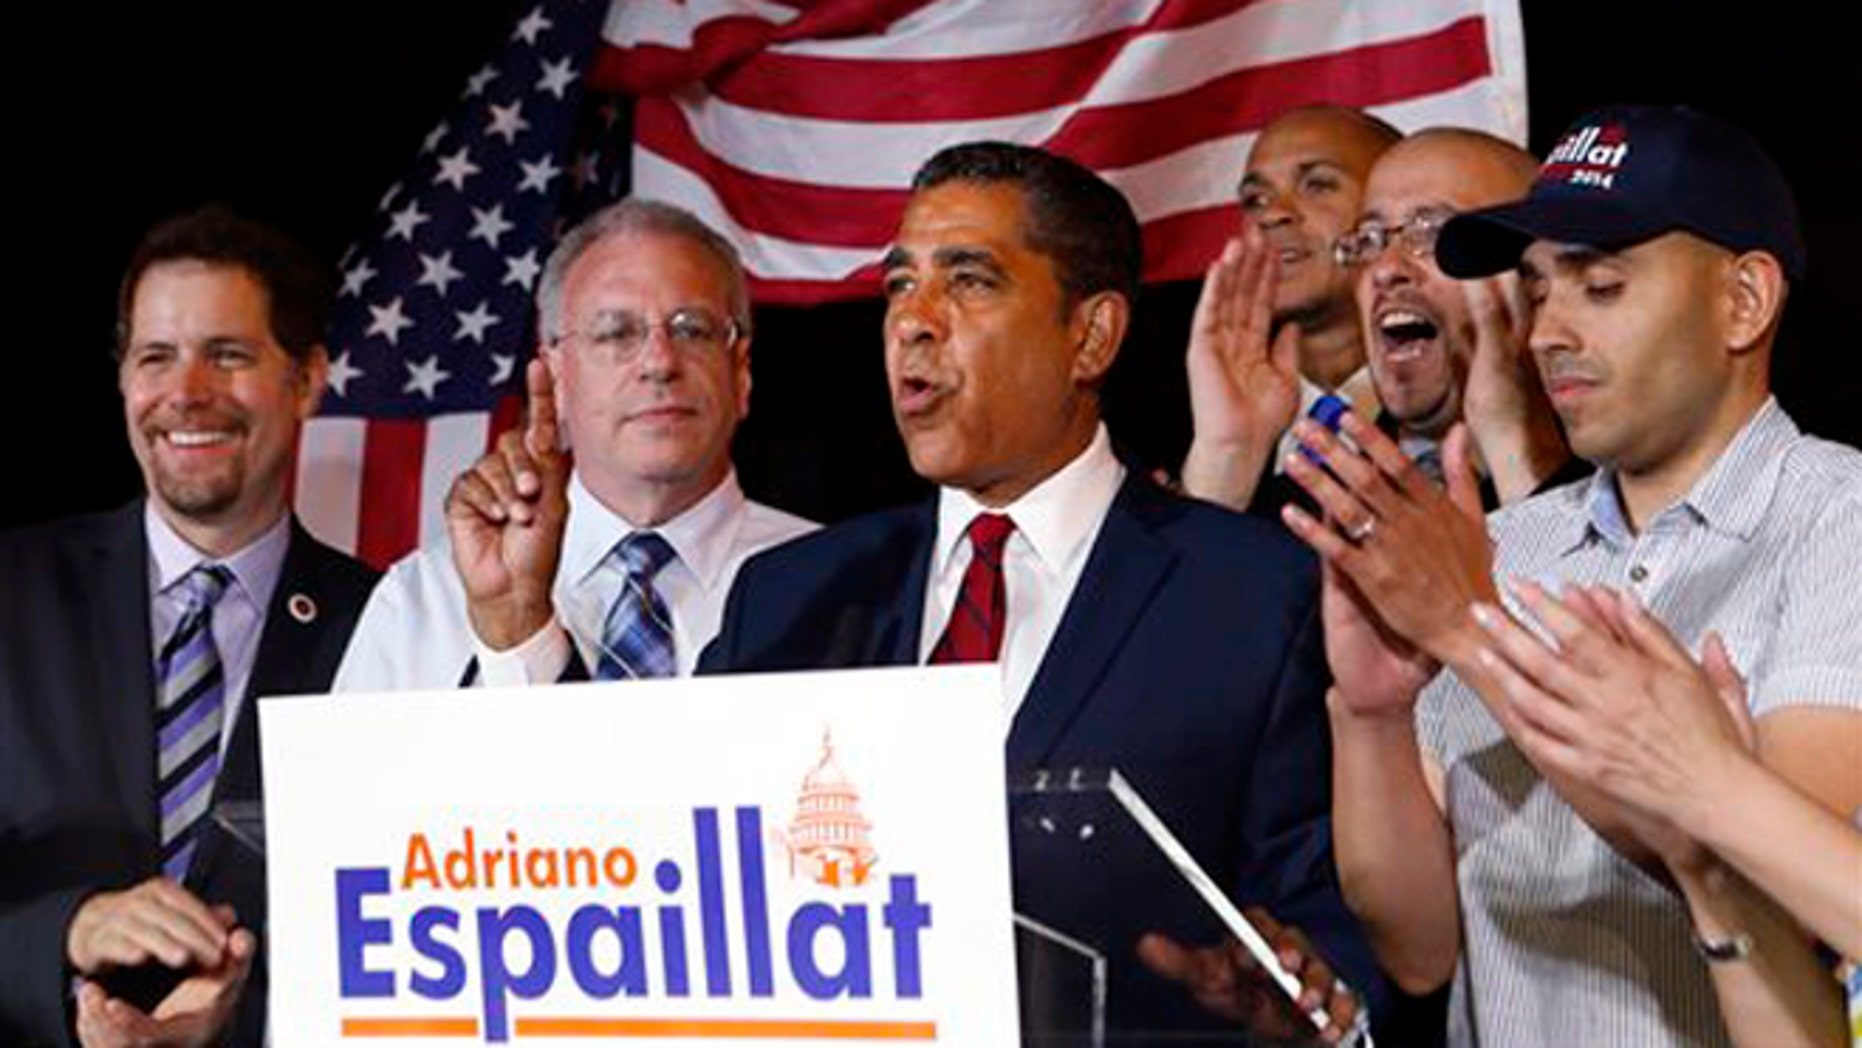 Espaillat declaring his race with Rangel too close to call in the Democratic primary for NY's 13th Congressional District, June 24, 2014.